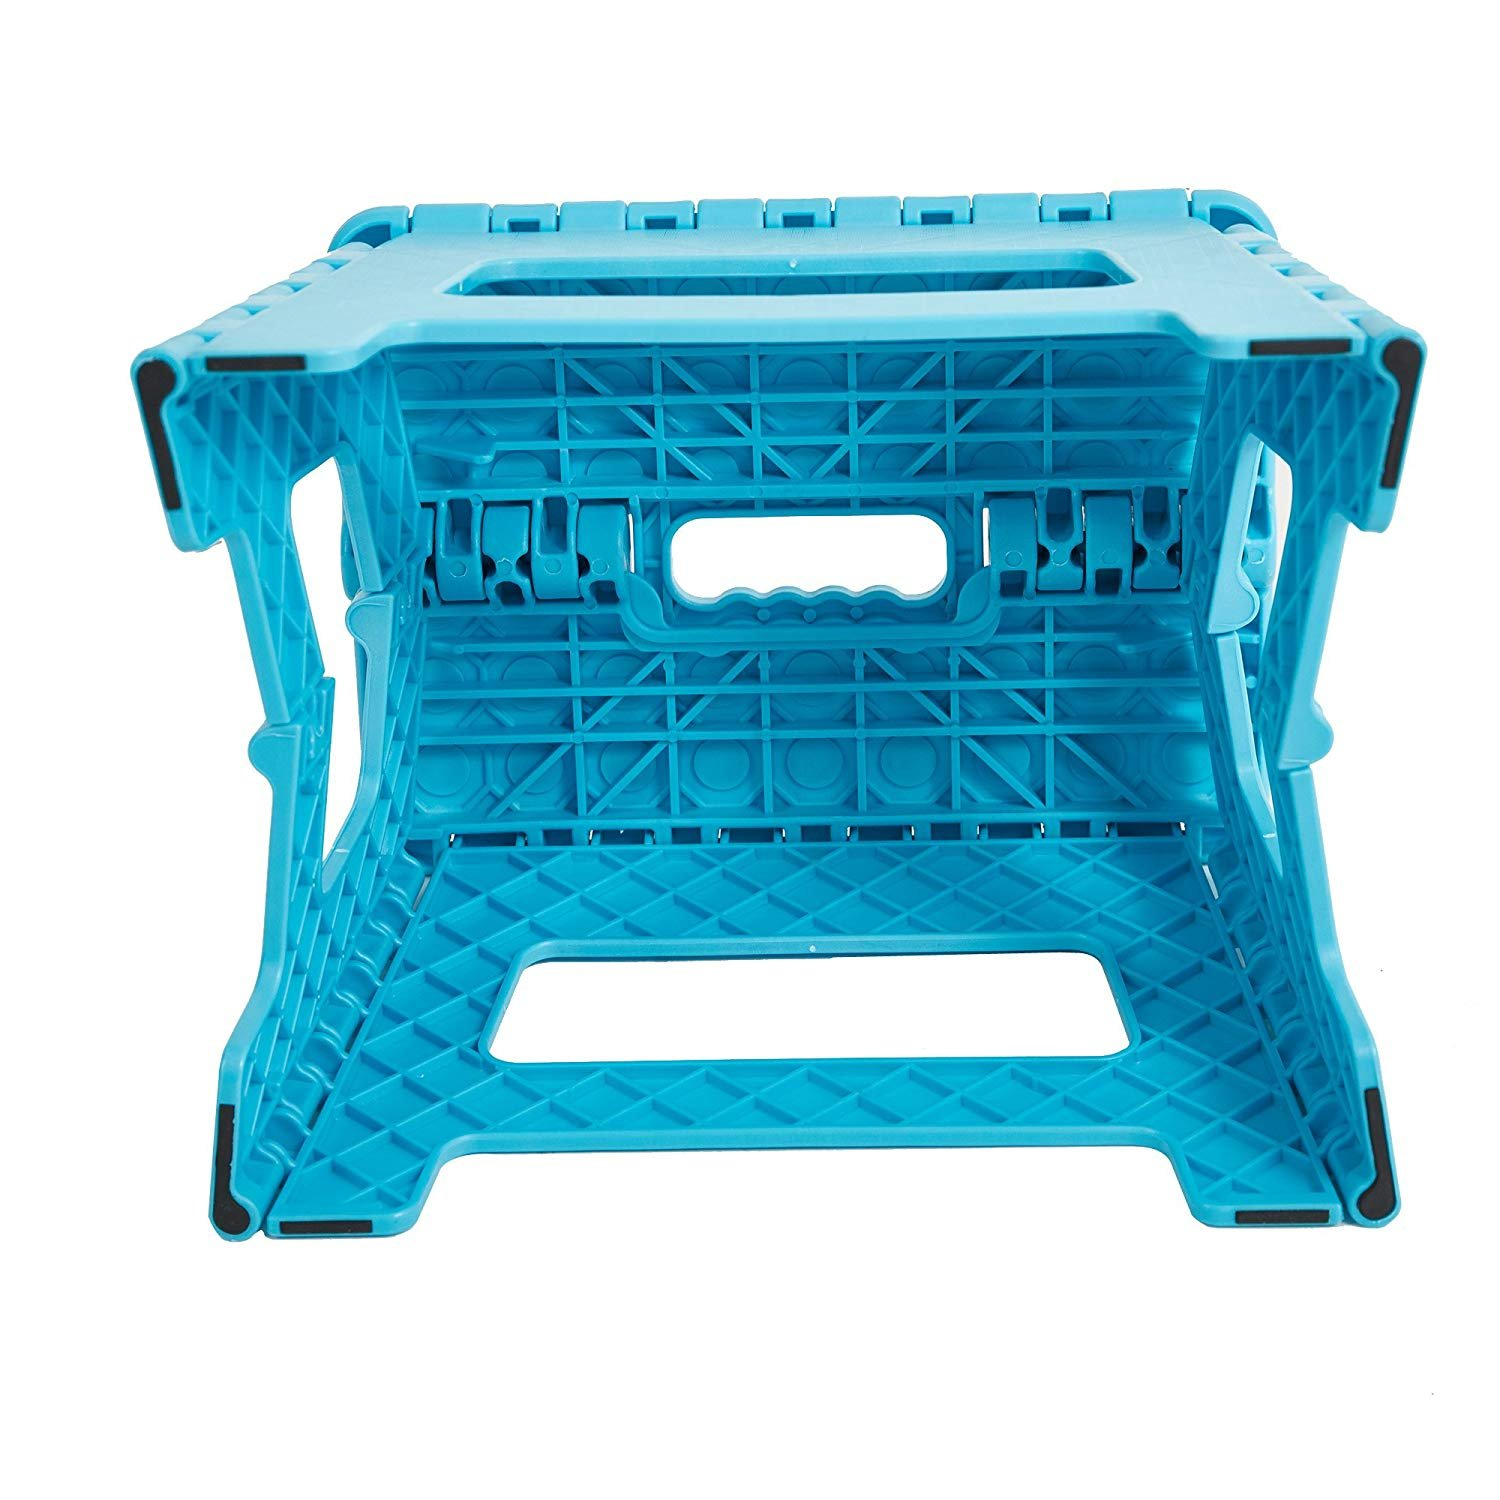 Dporticus Super Strong Folding Step Stool with Handle 300 LB Capacity for Adults Garden Kitchen Bathroom Toddlers and Kids